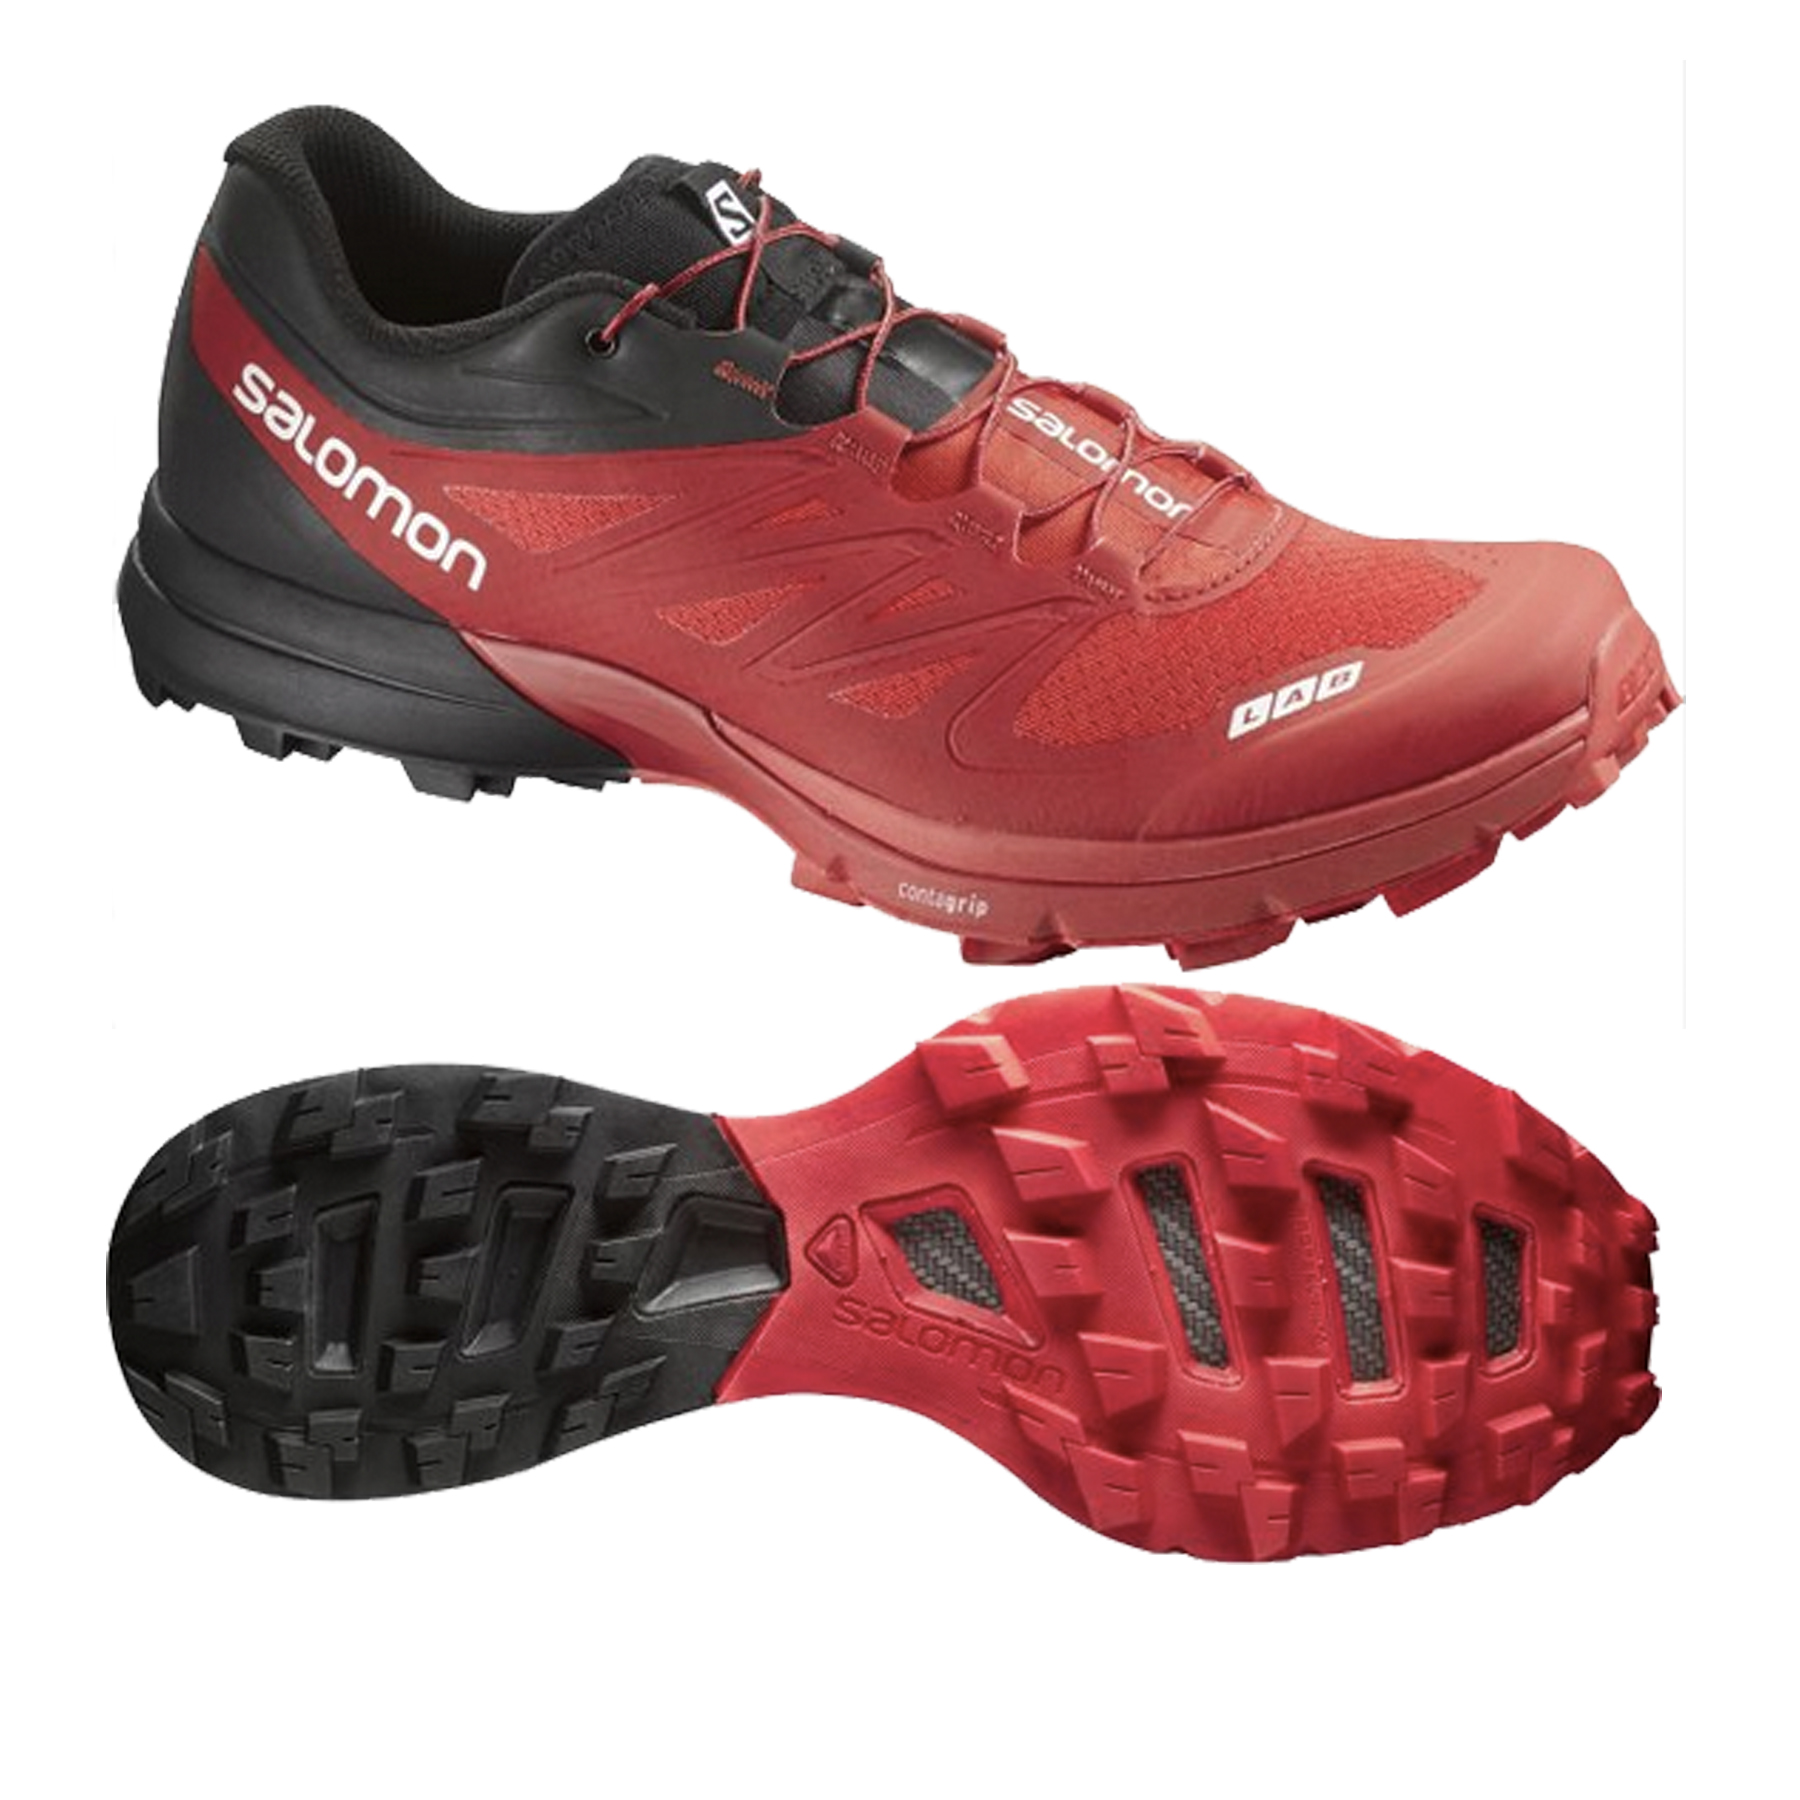 salomon s-lab sense 3 ultra sg lite